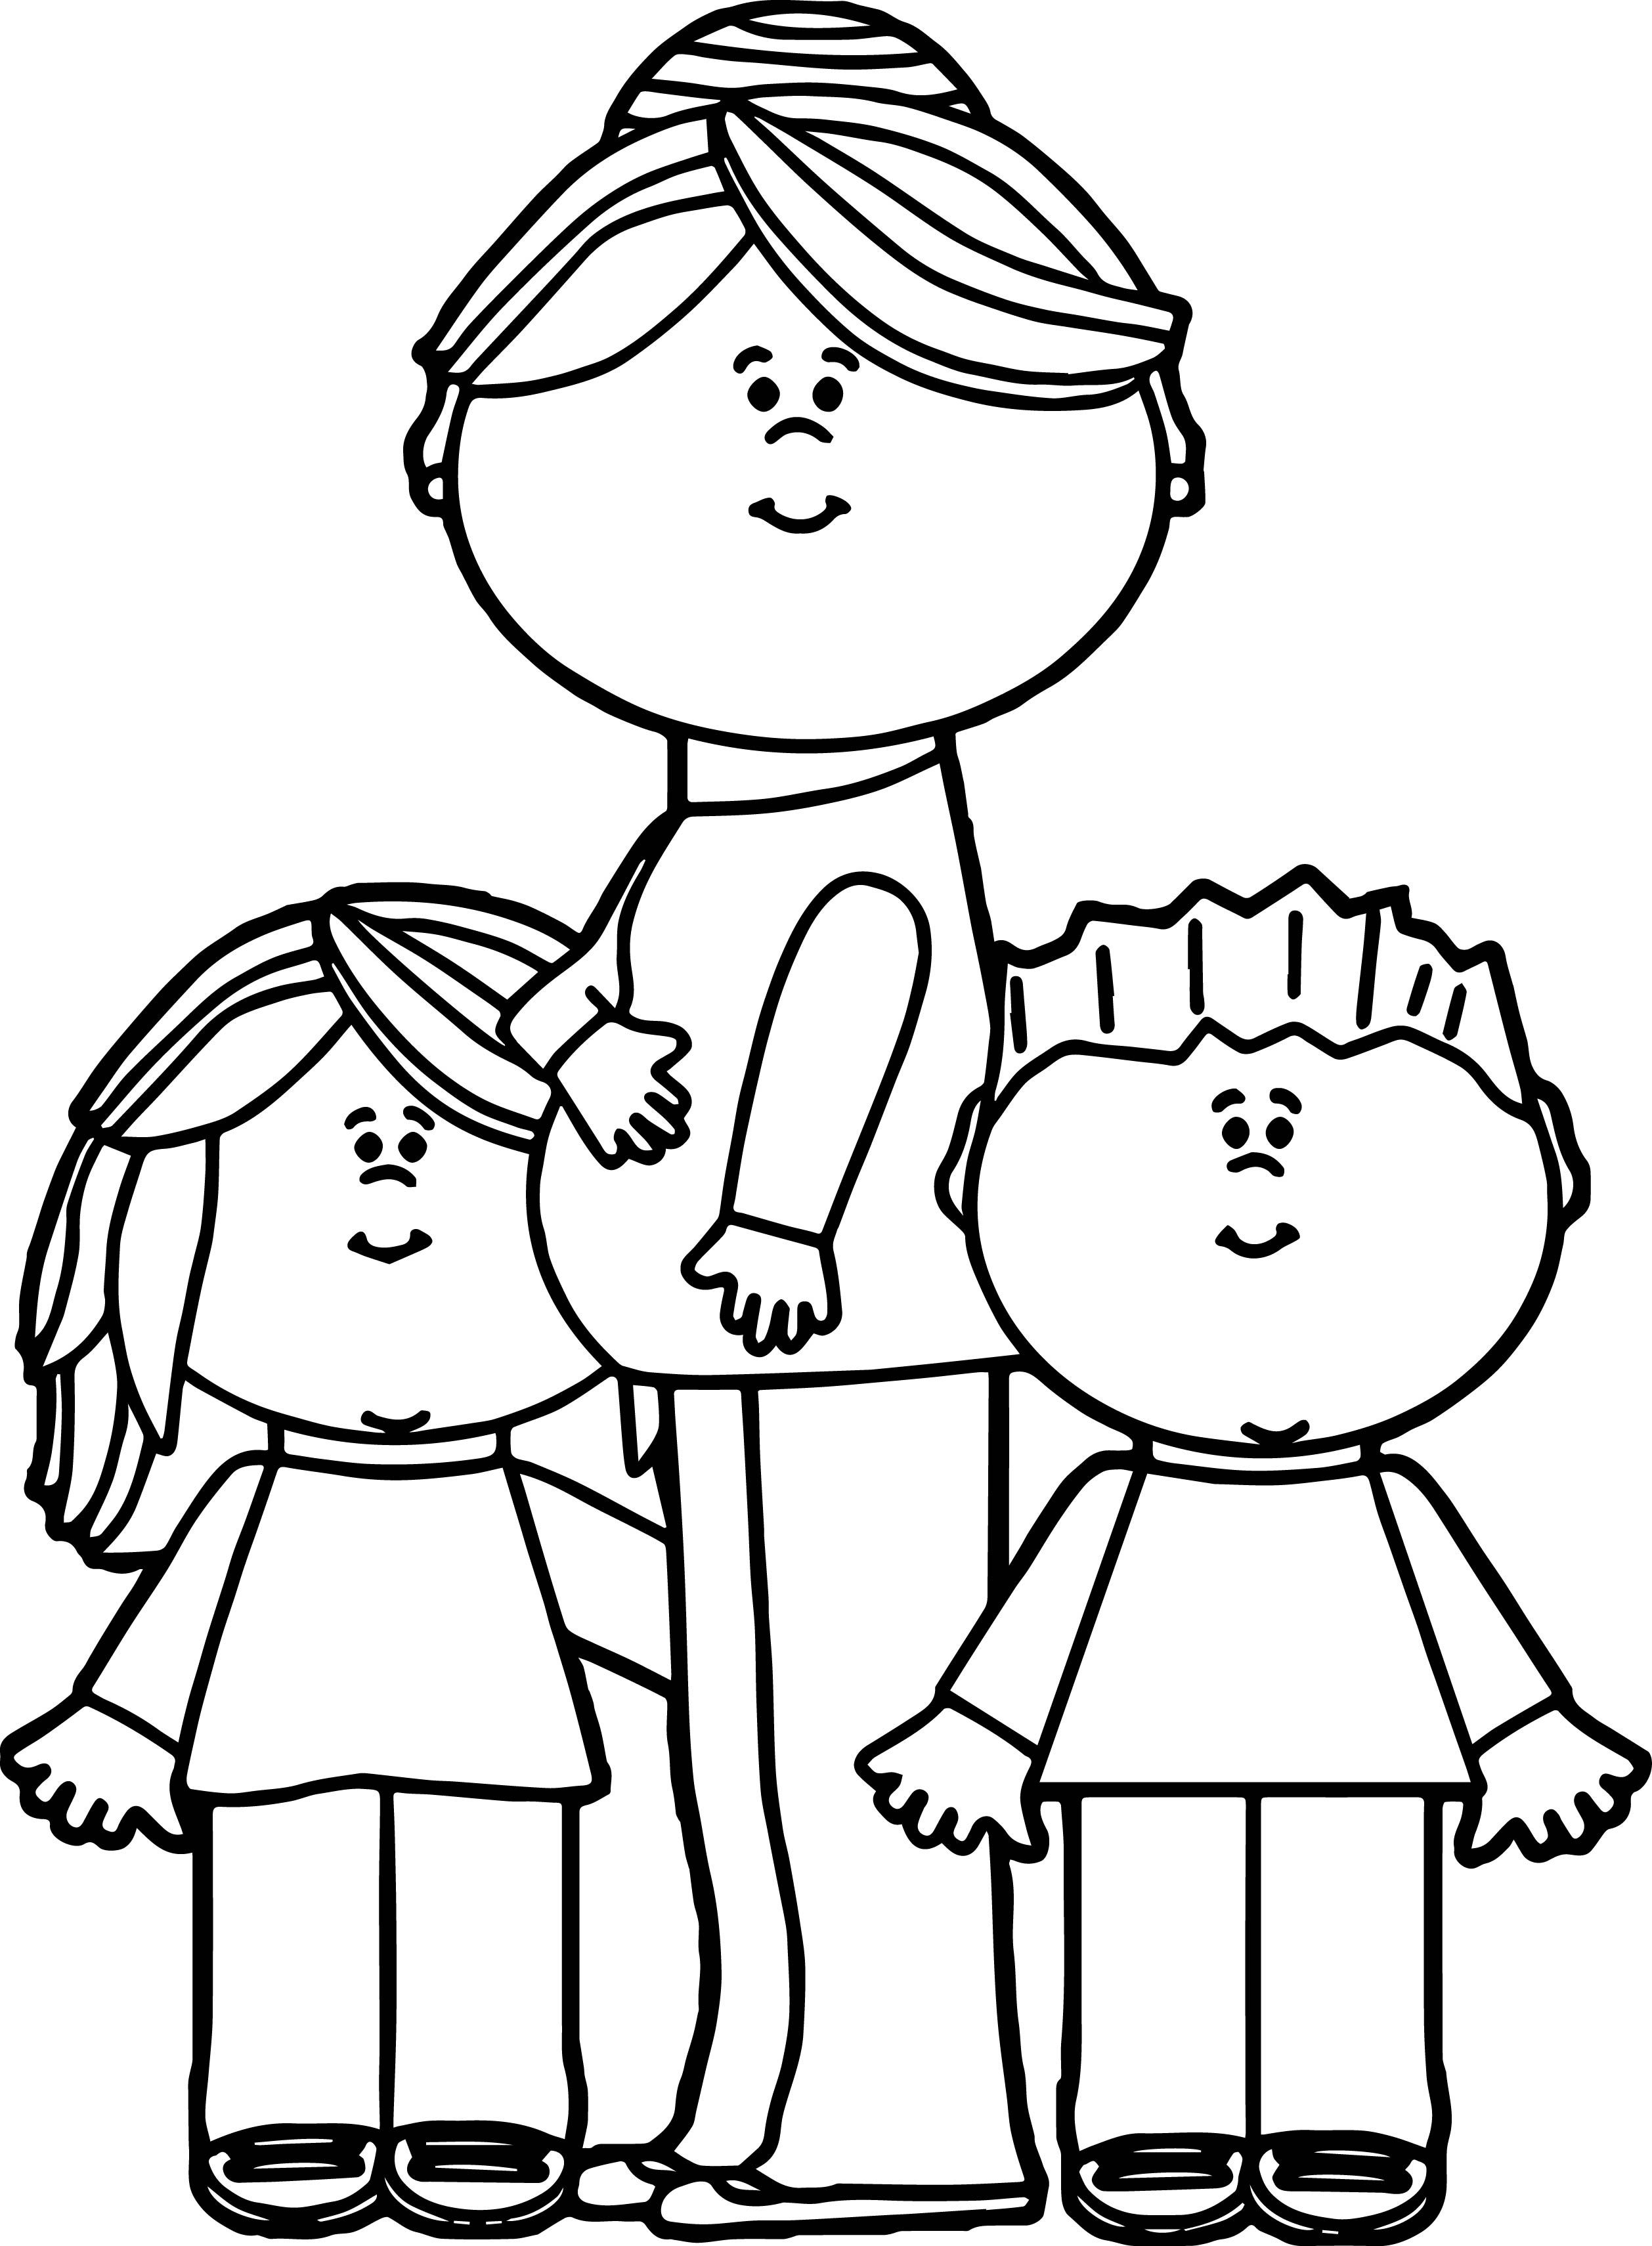 Awesome Pregnant Mom With Kids Coloring Page Coloring Pages For Kids Family Coloring Coloring For Kids